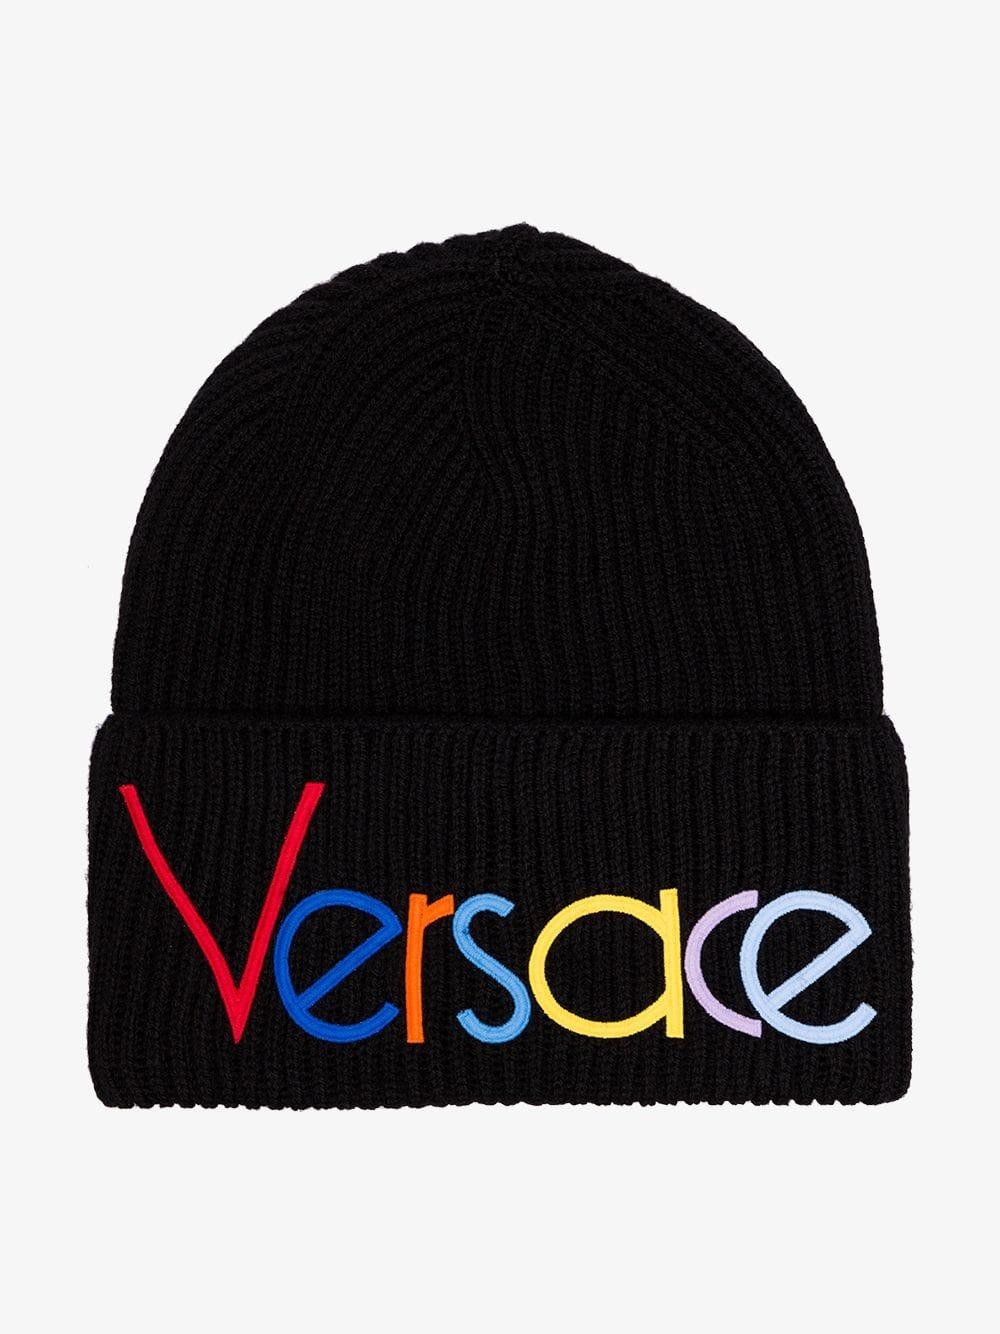 0f1bf58d7eb Lyst - Versace Black Logo Embroidered Beanie Hat in Black for Men